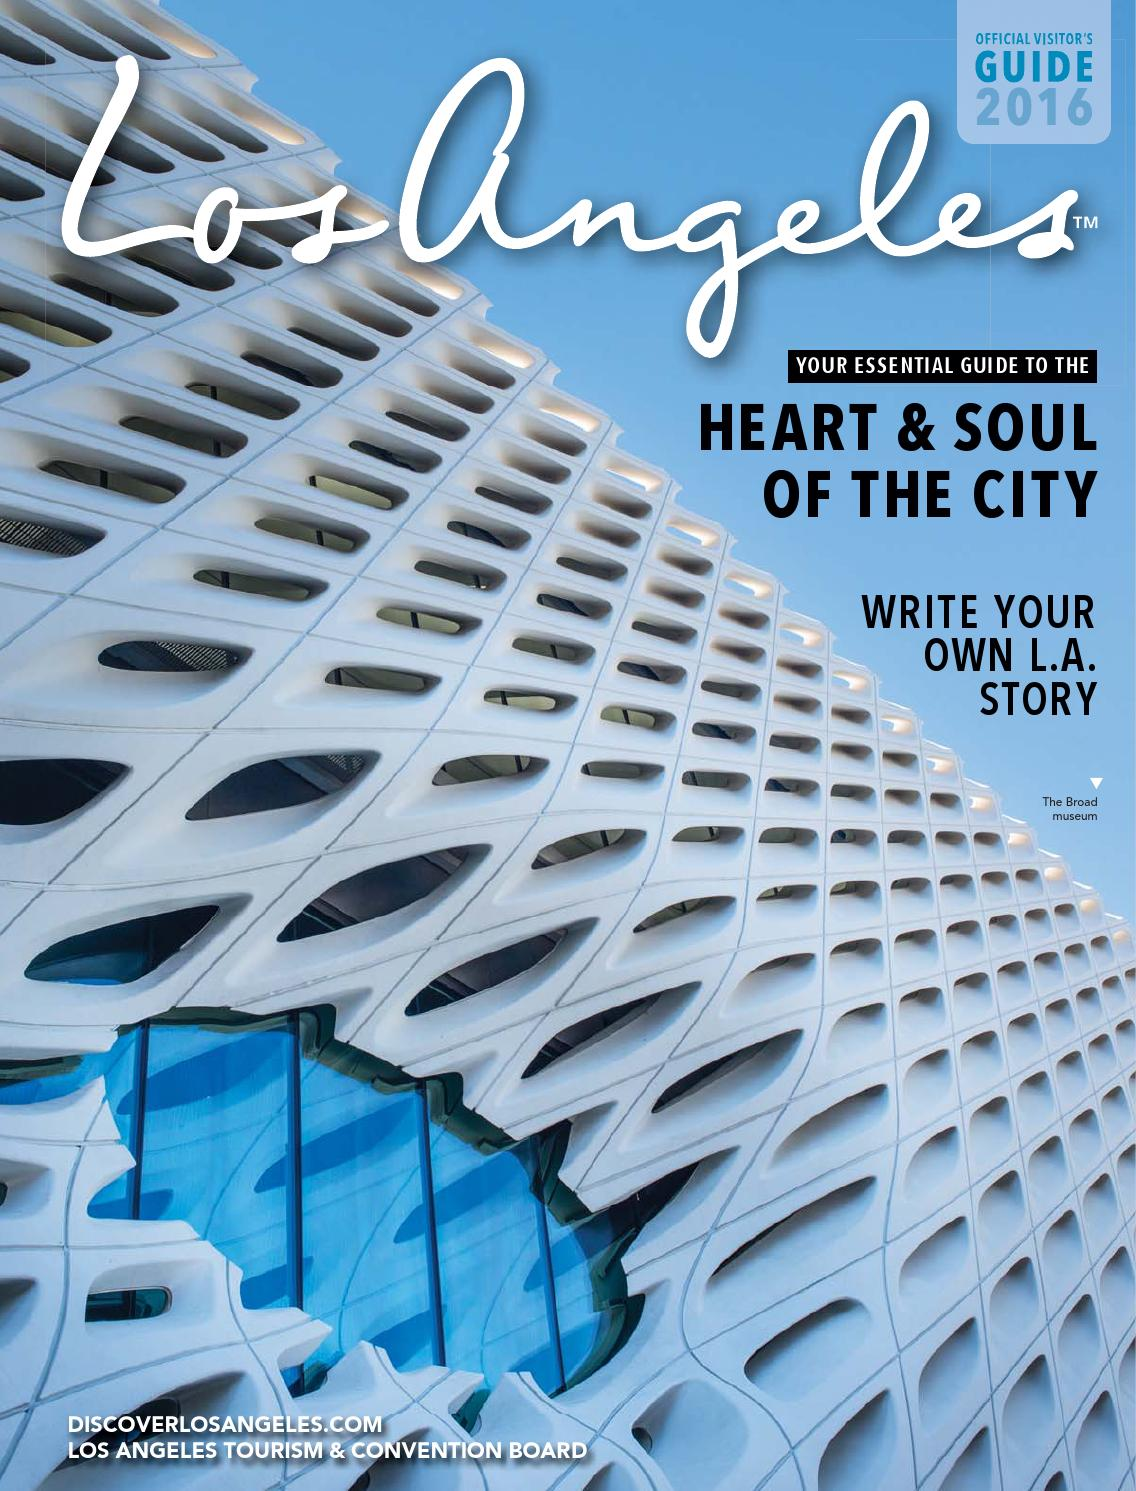 Los Angeles Official Visitor S Guide 2016 By Los Angeles Magazine Custom Publications Issuu